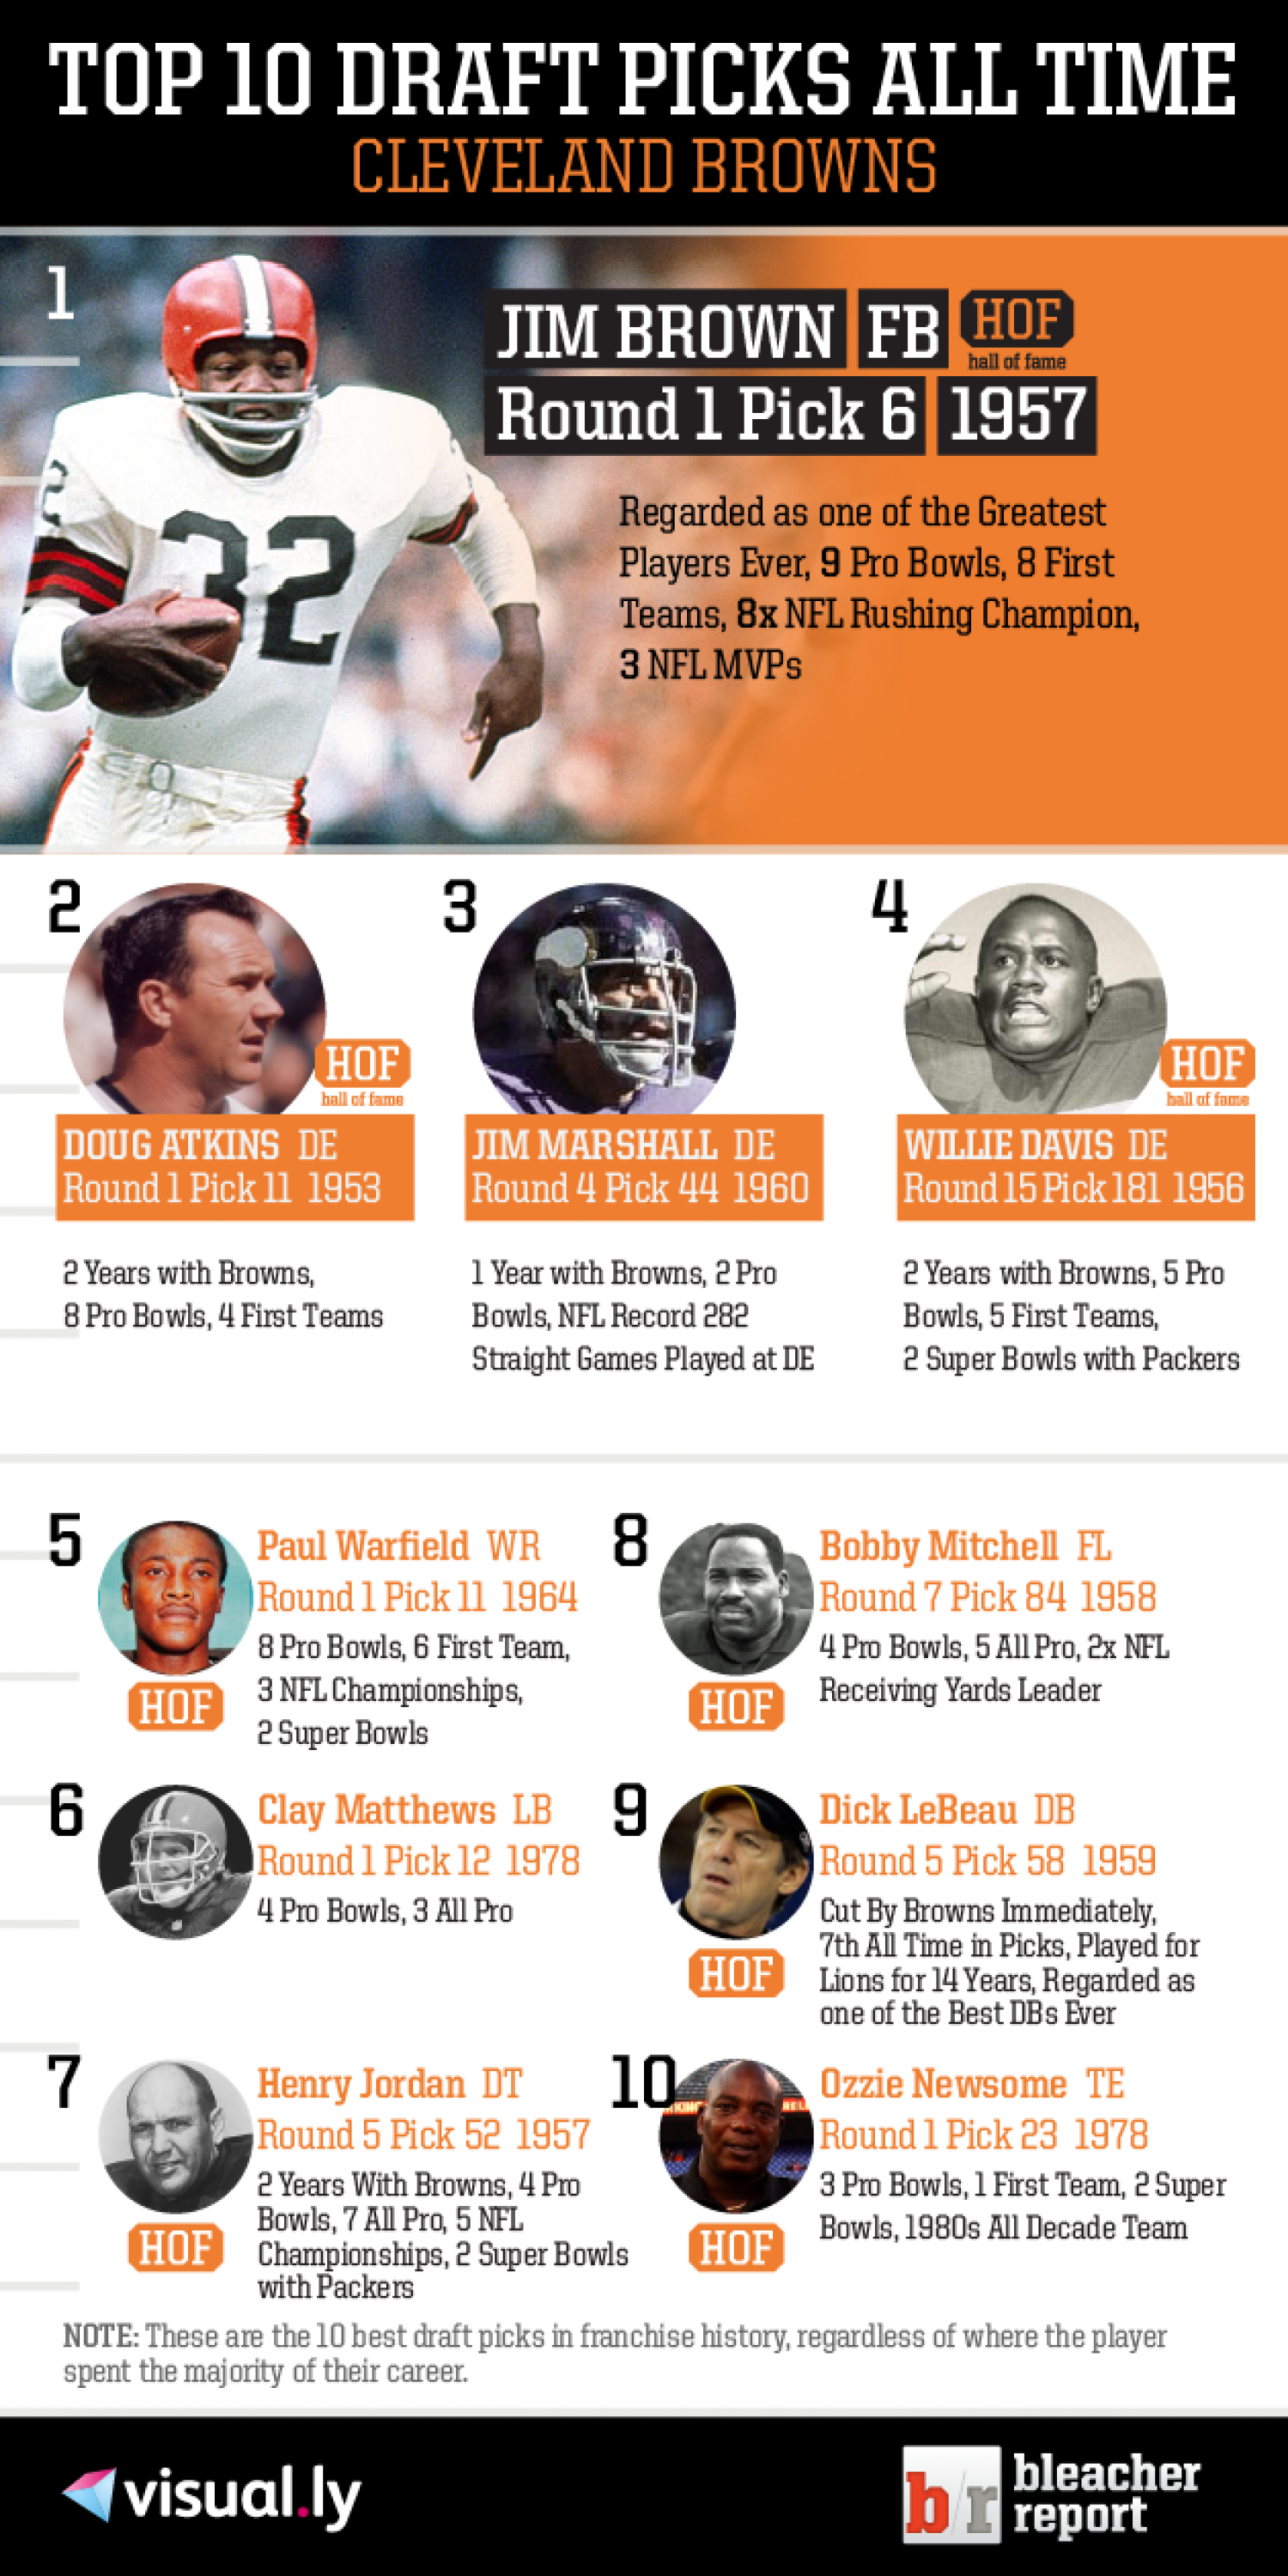 Top 10 Draft Picks of All Time: Cleveland Browns Infographic